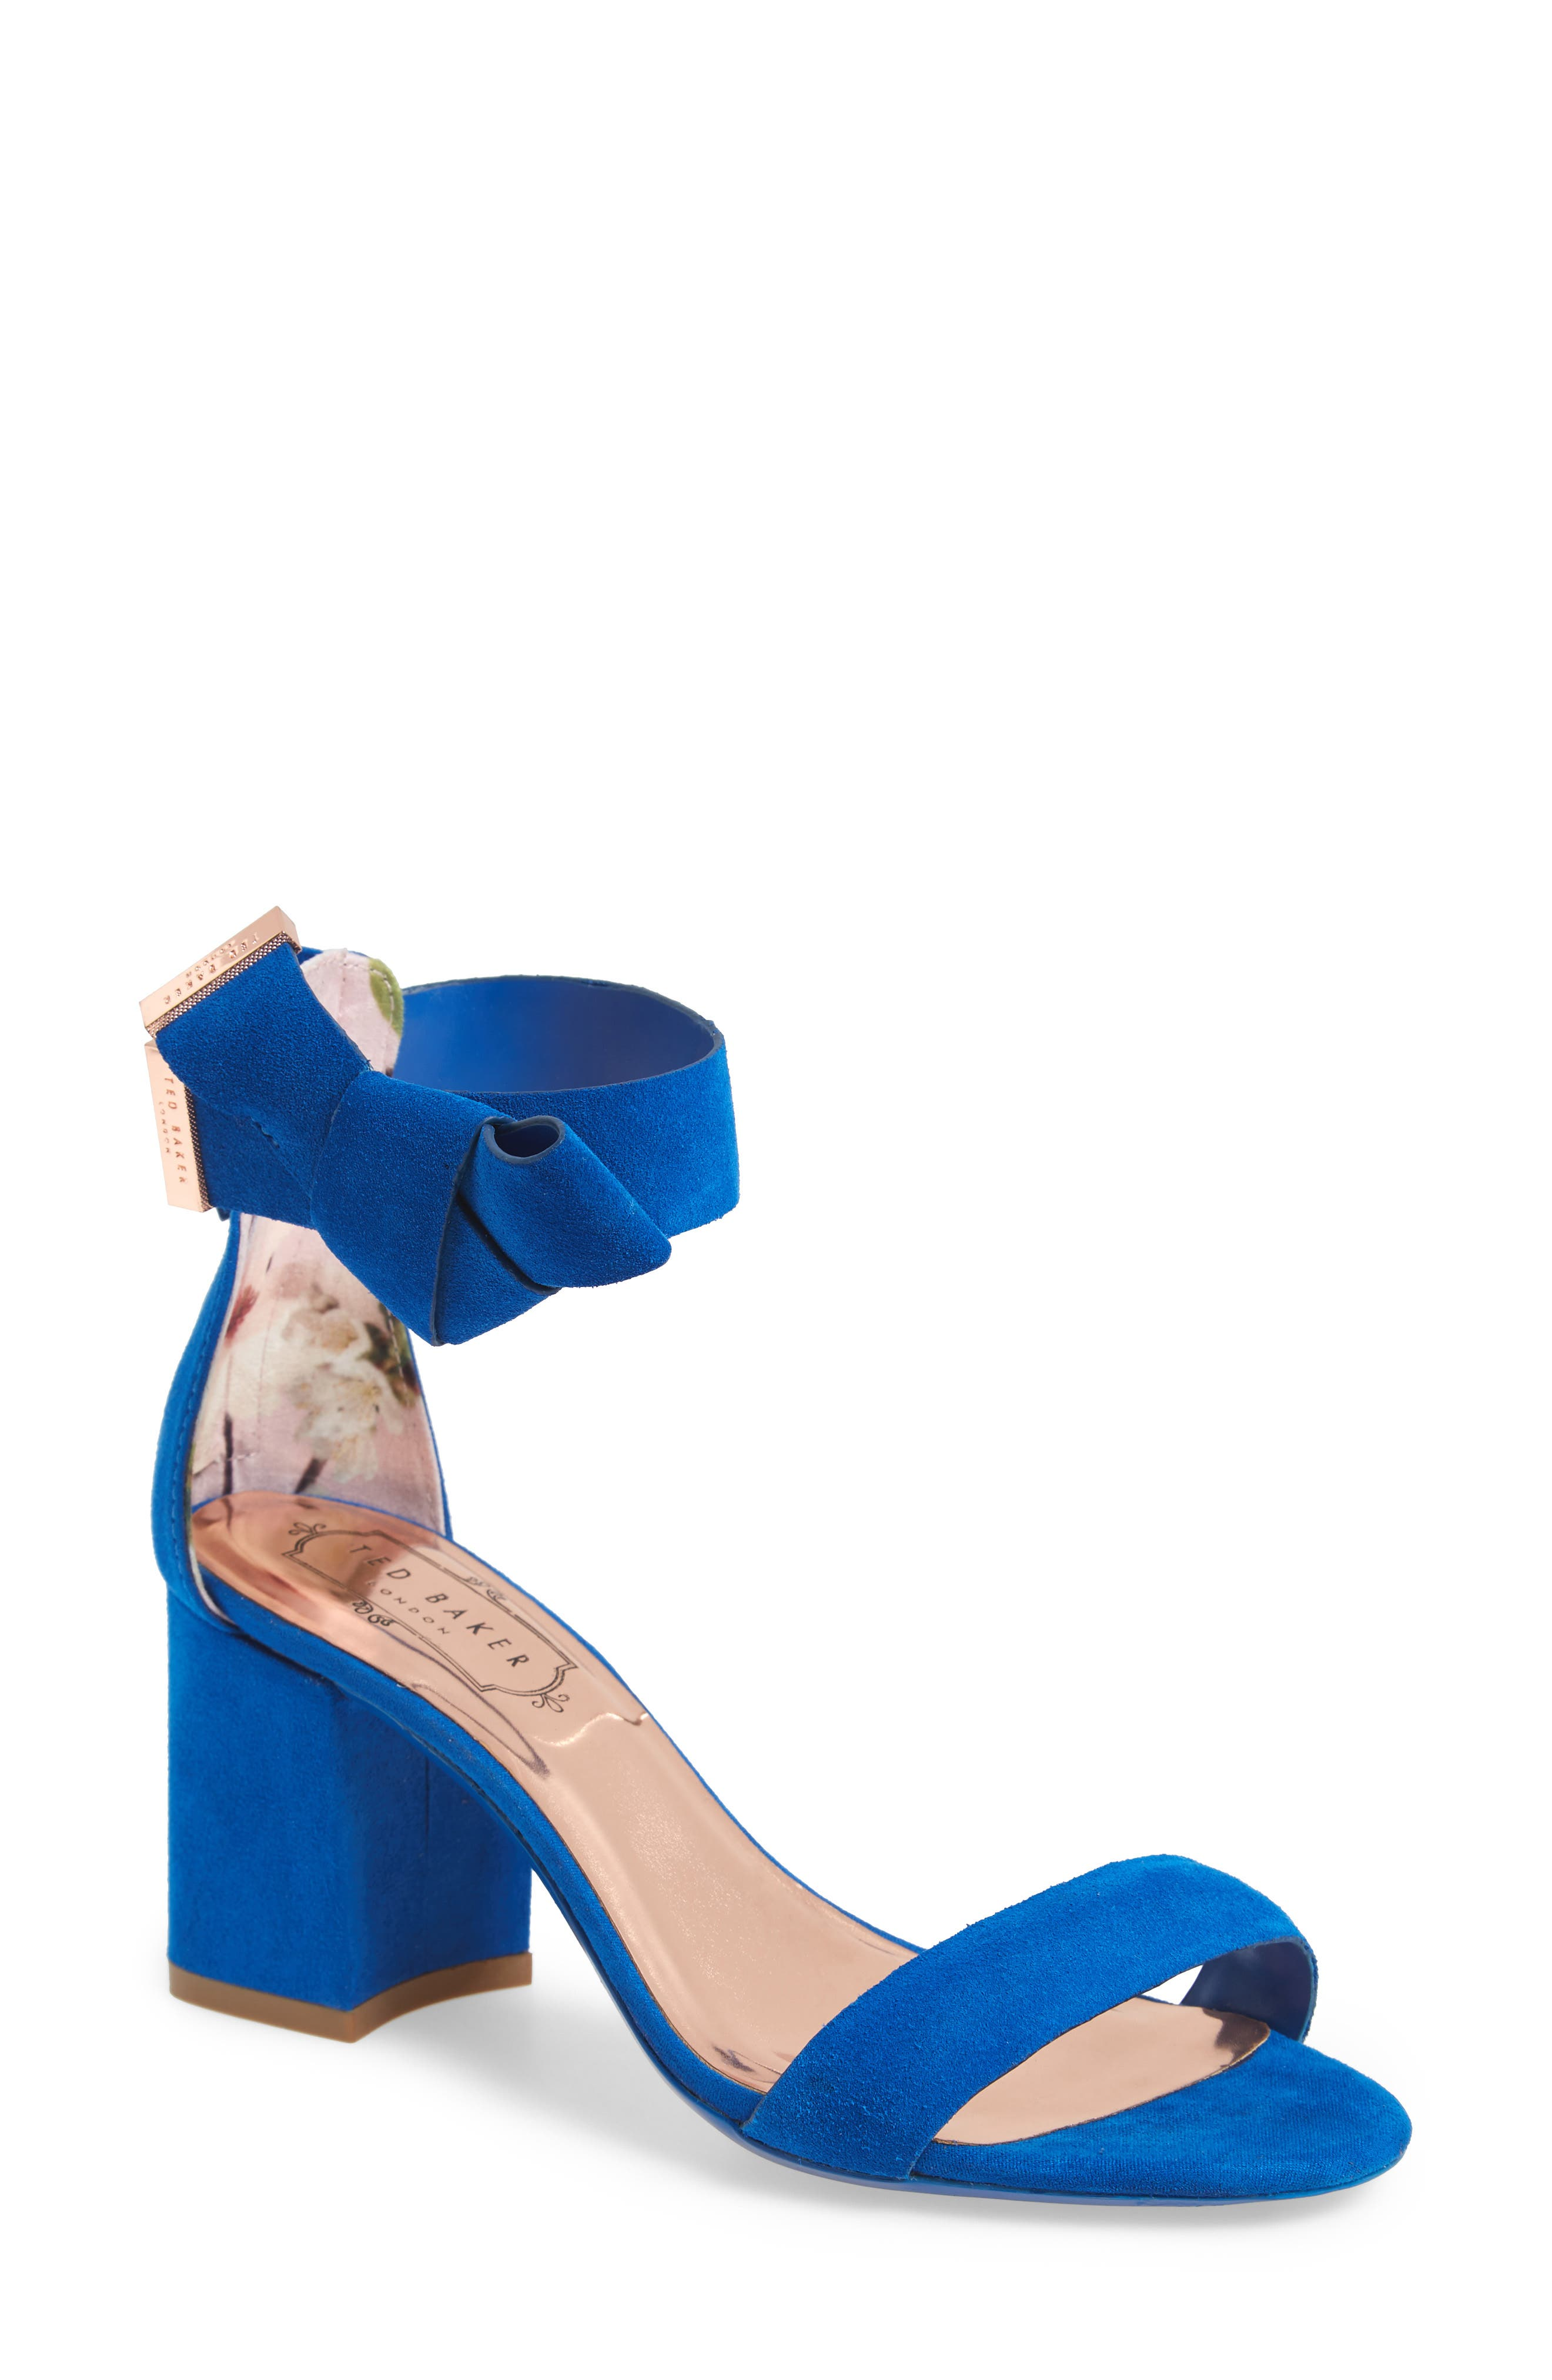 Kerrias Block Heel Sandal,                             Main thumbnail 1, color,                             402